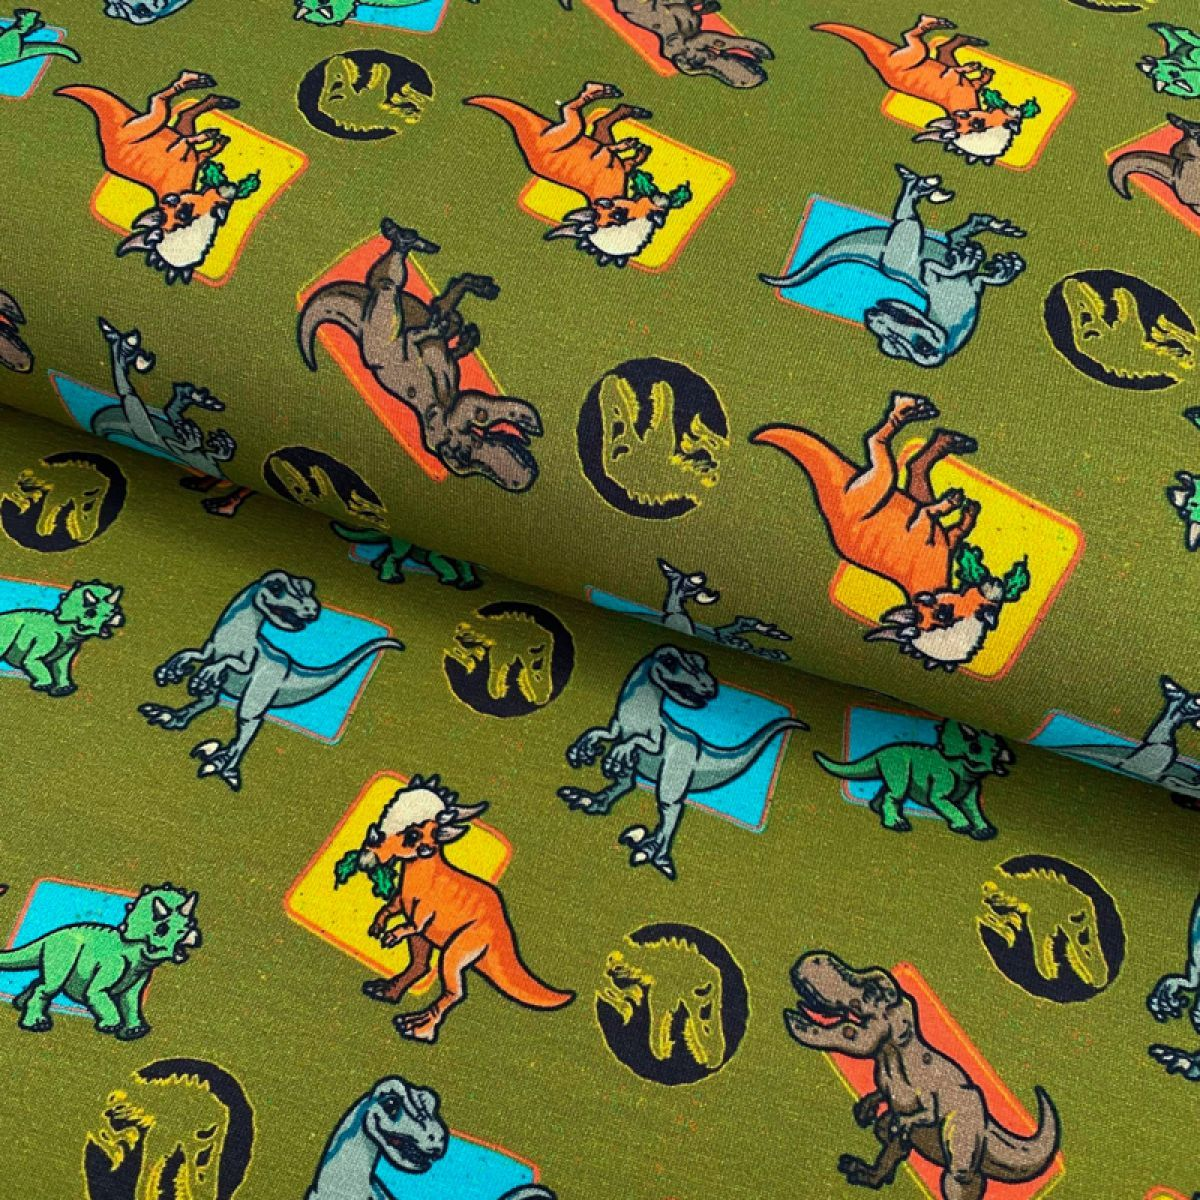 Úplet Jurassic world Characters moss green digital print